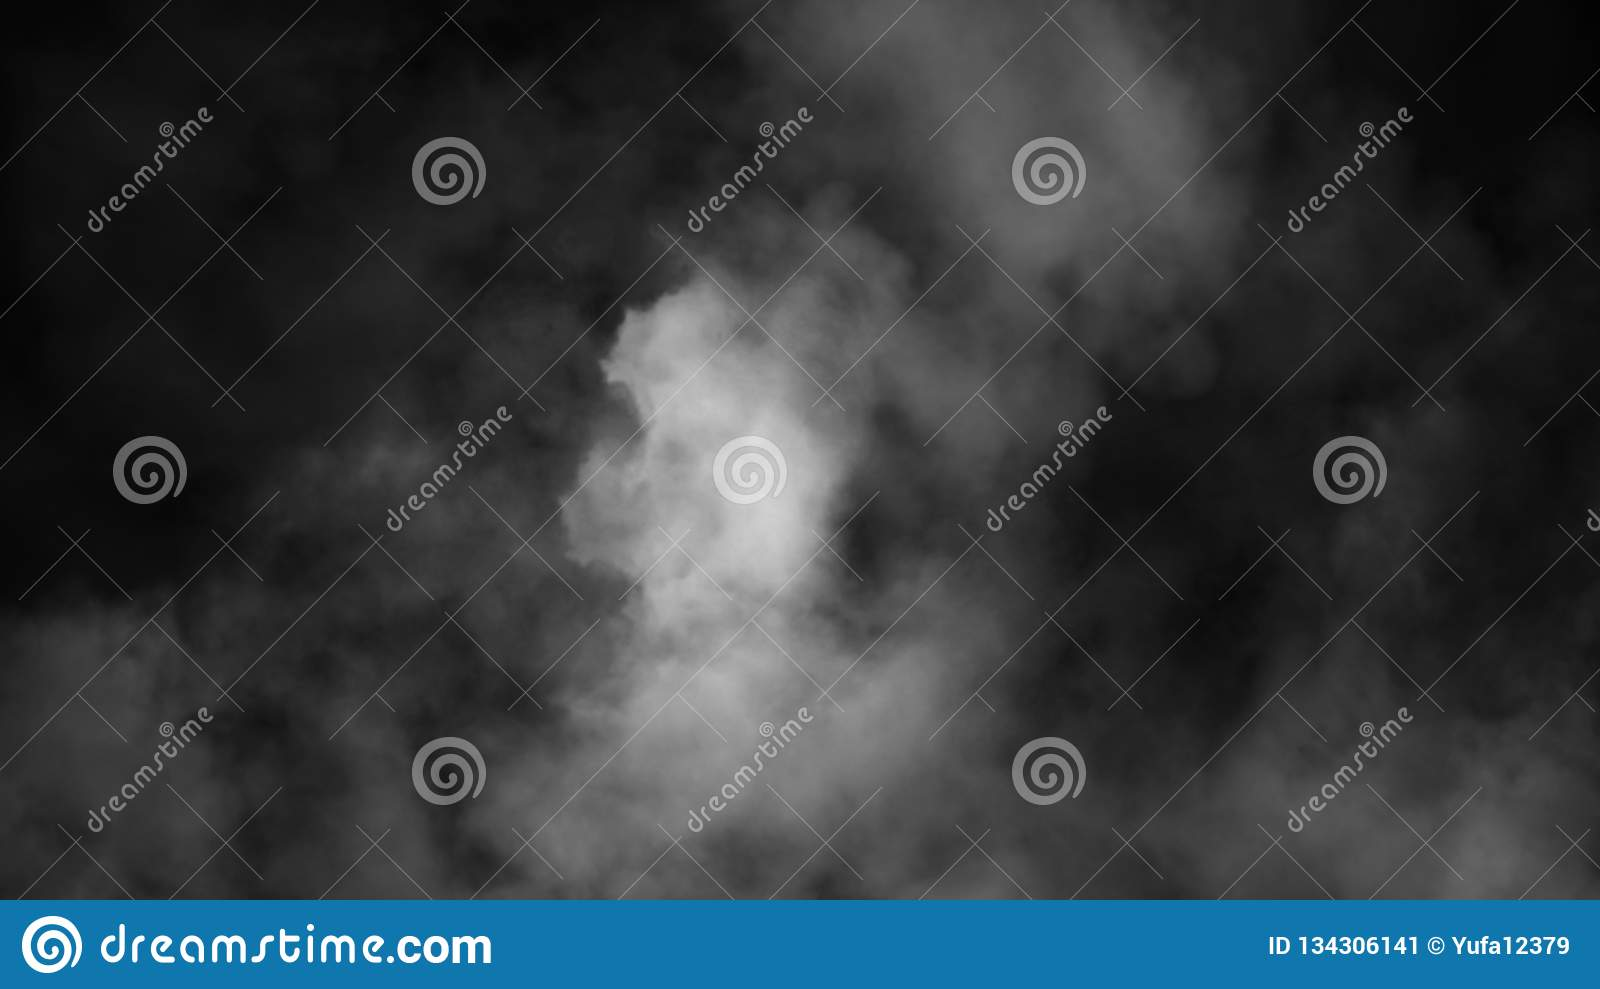 Fog And Mist Effect On Black Background  Smoke Texture Stock